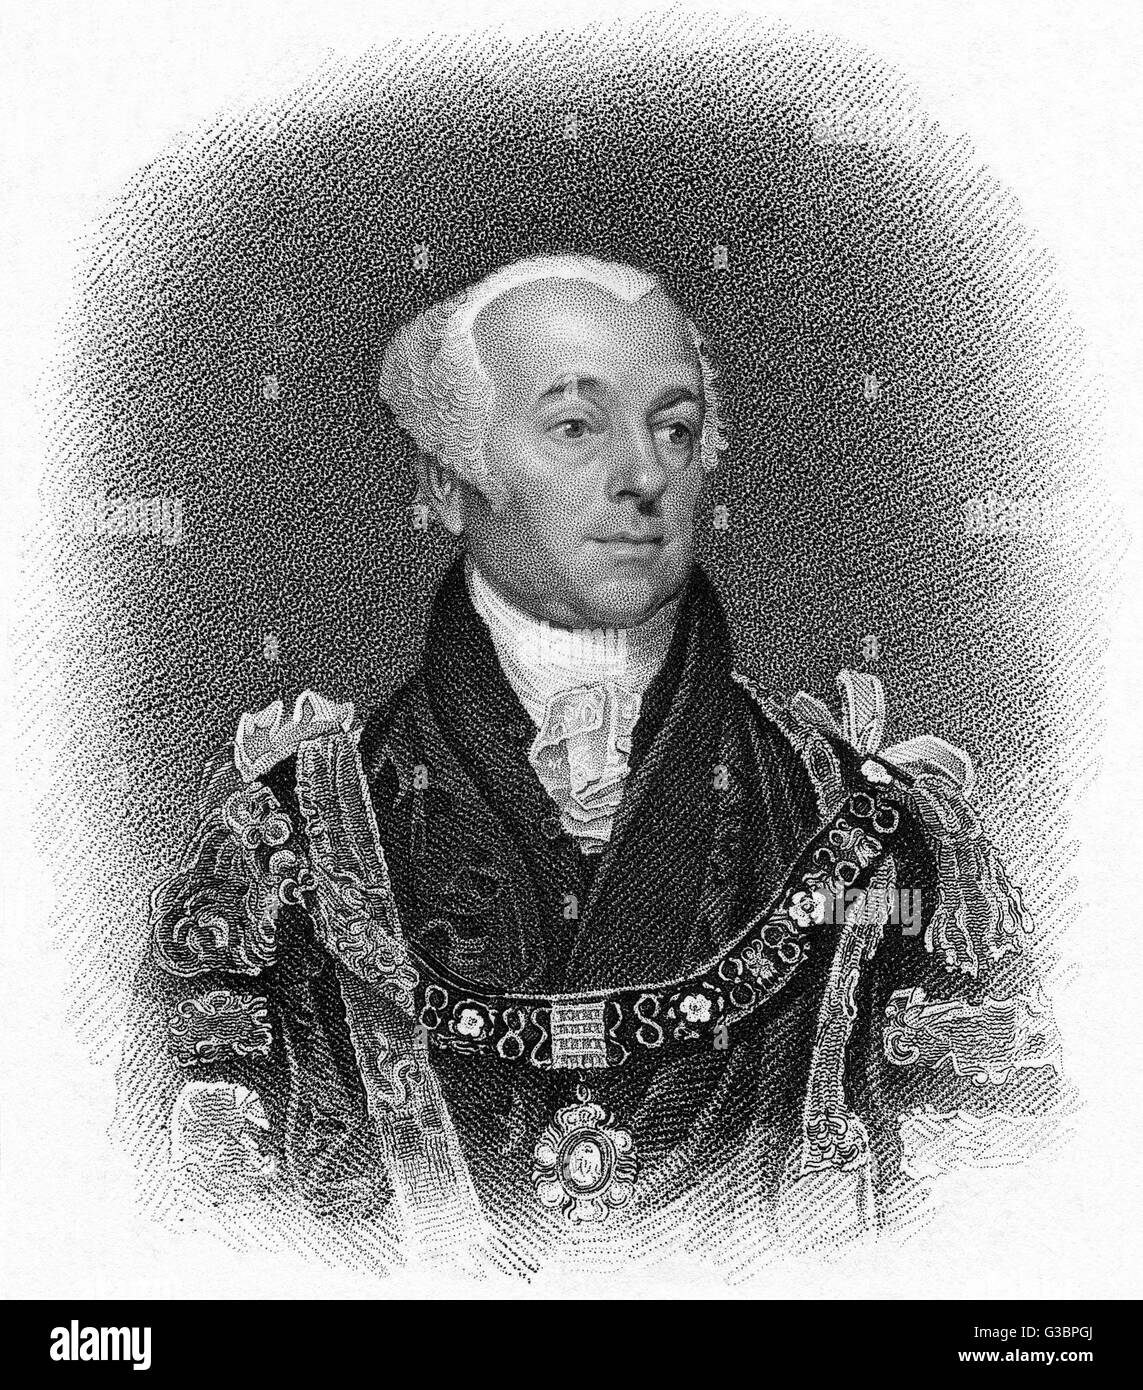 GEORGE SCHOLEY London merchant (presumably),  lord mayor of London in 1815        Date: CIRCA 1815 - Stock Image